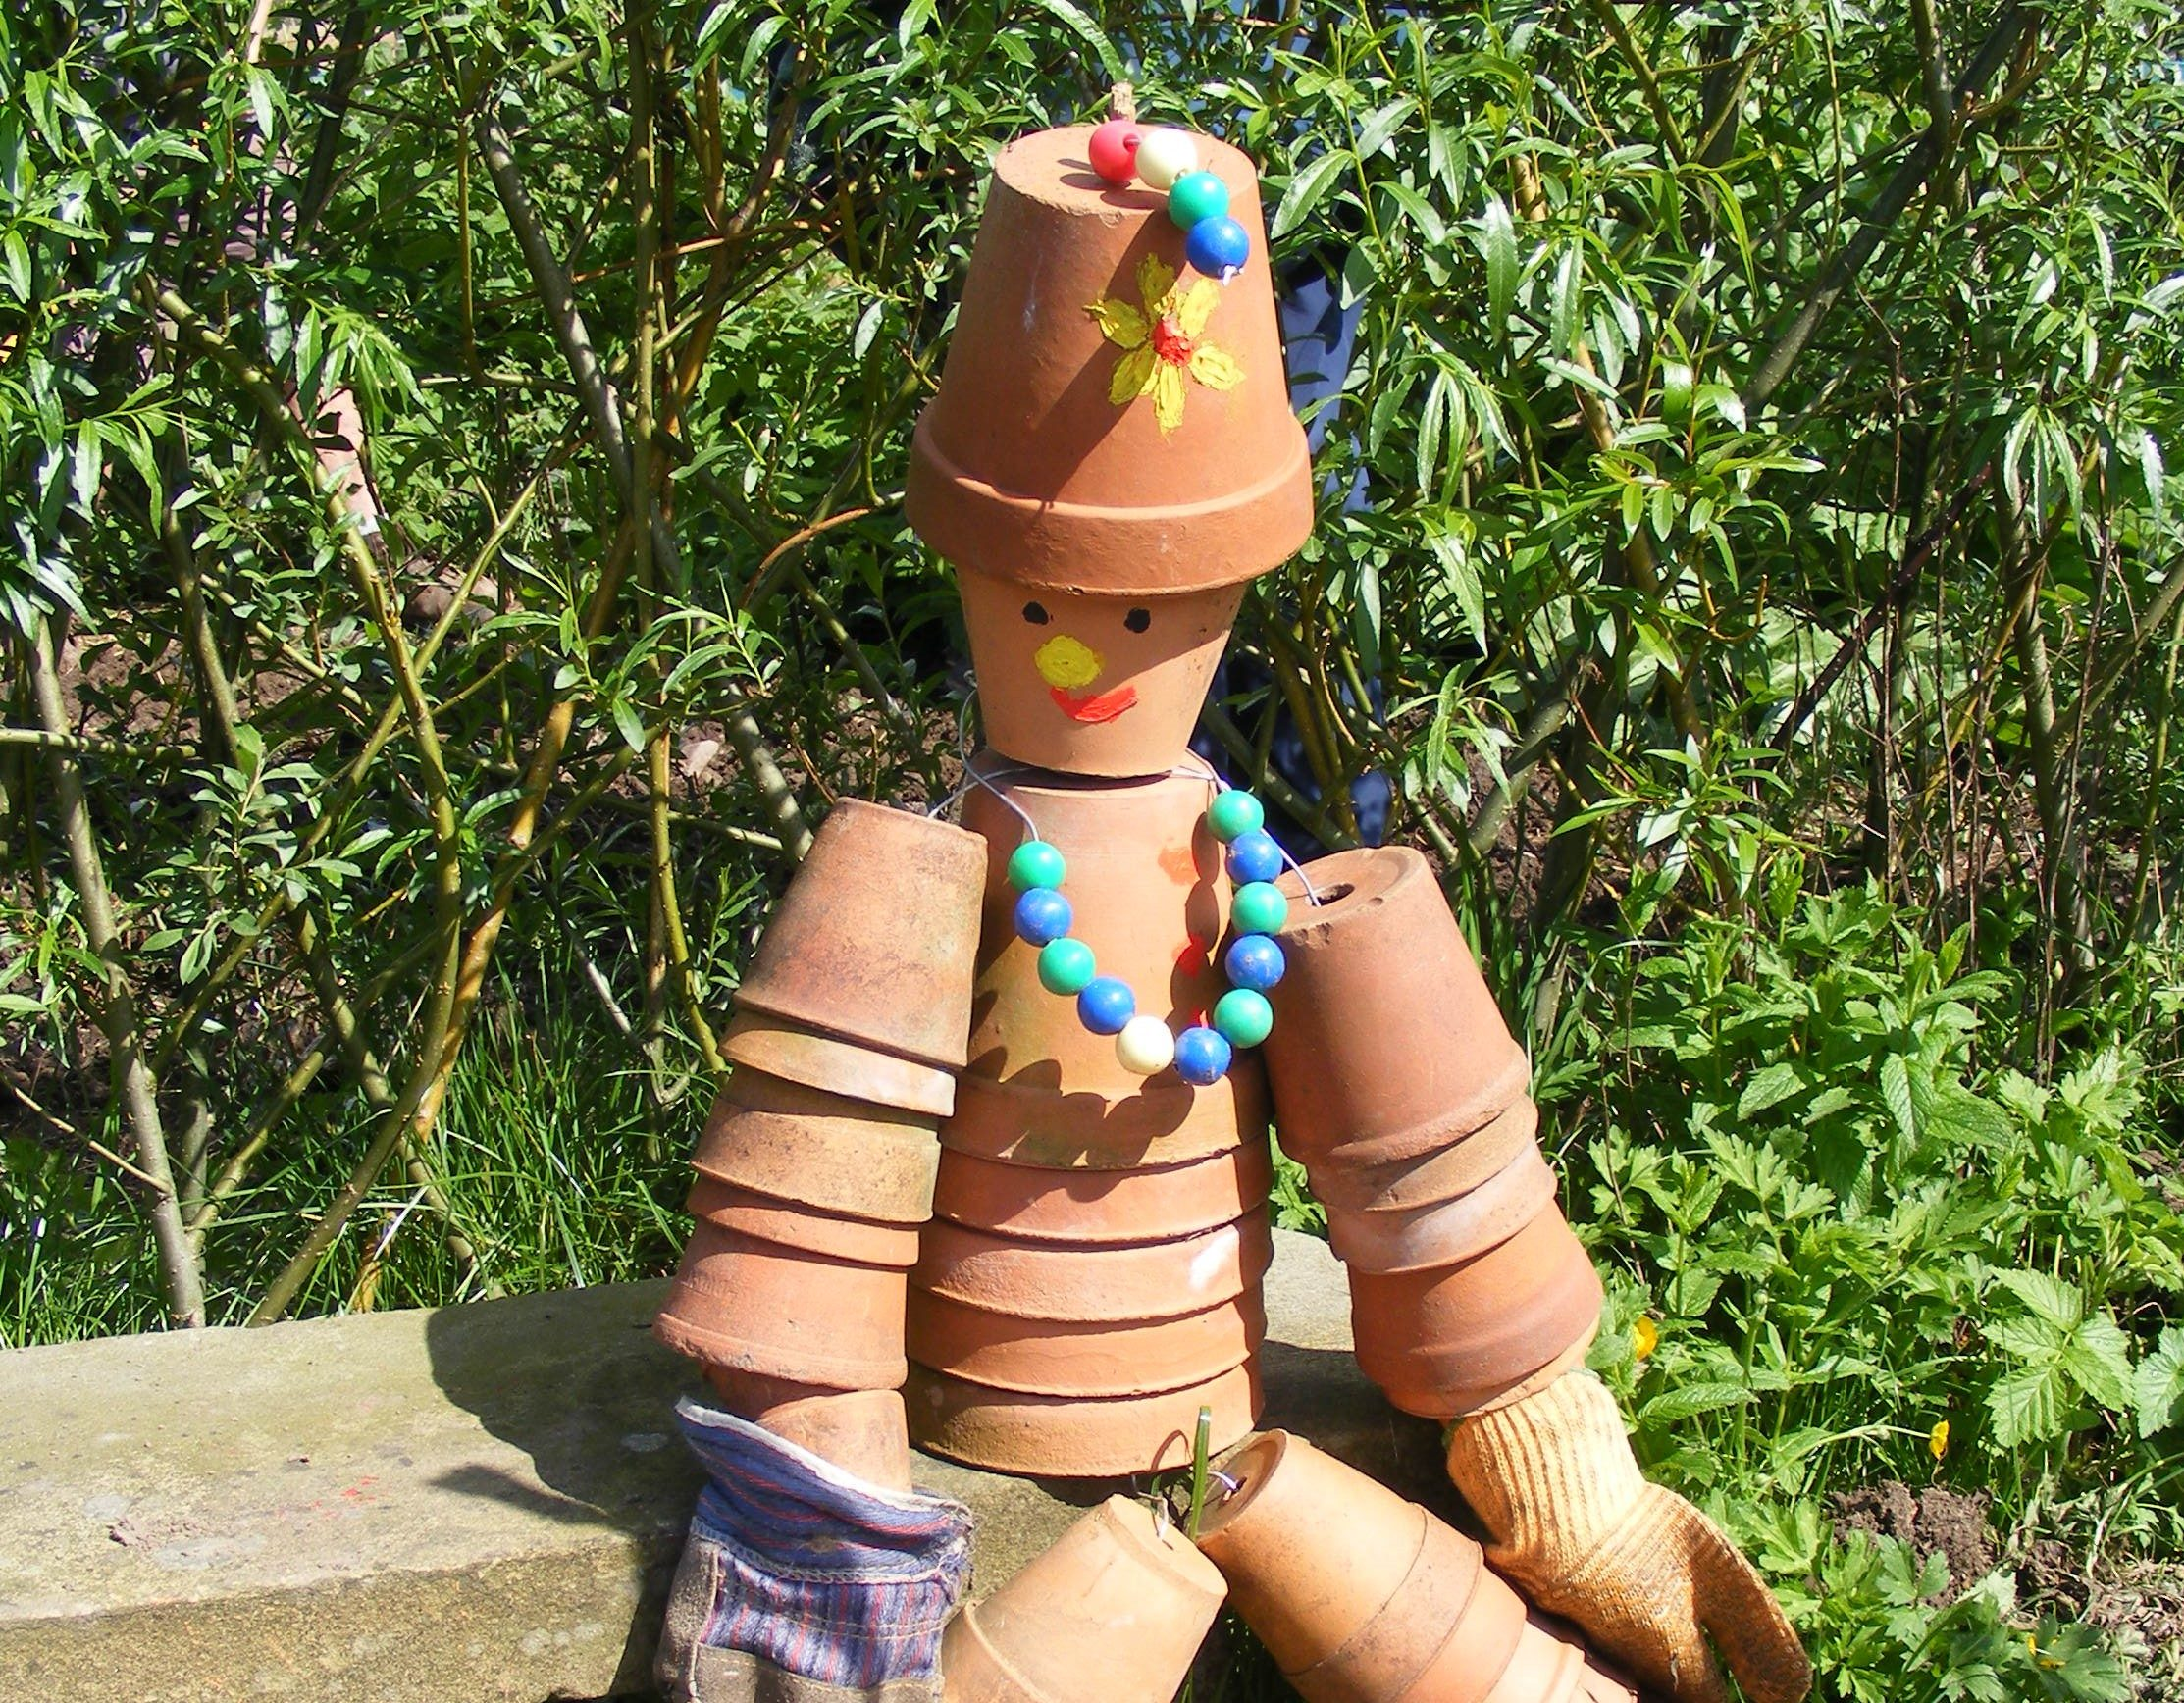 A figure made out of terracotta pots sitting on a bench down the allotment.